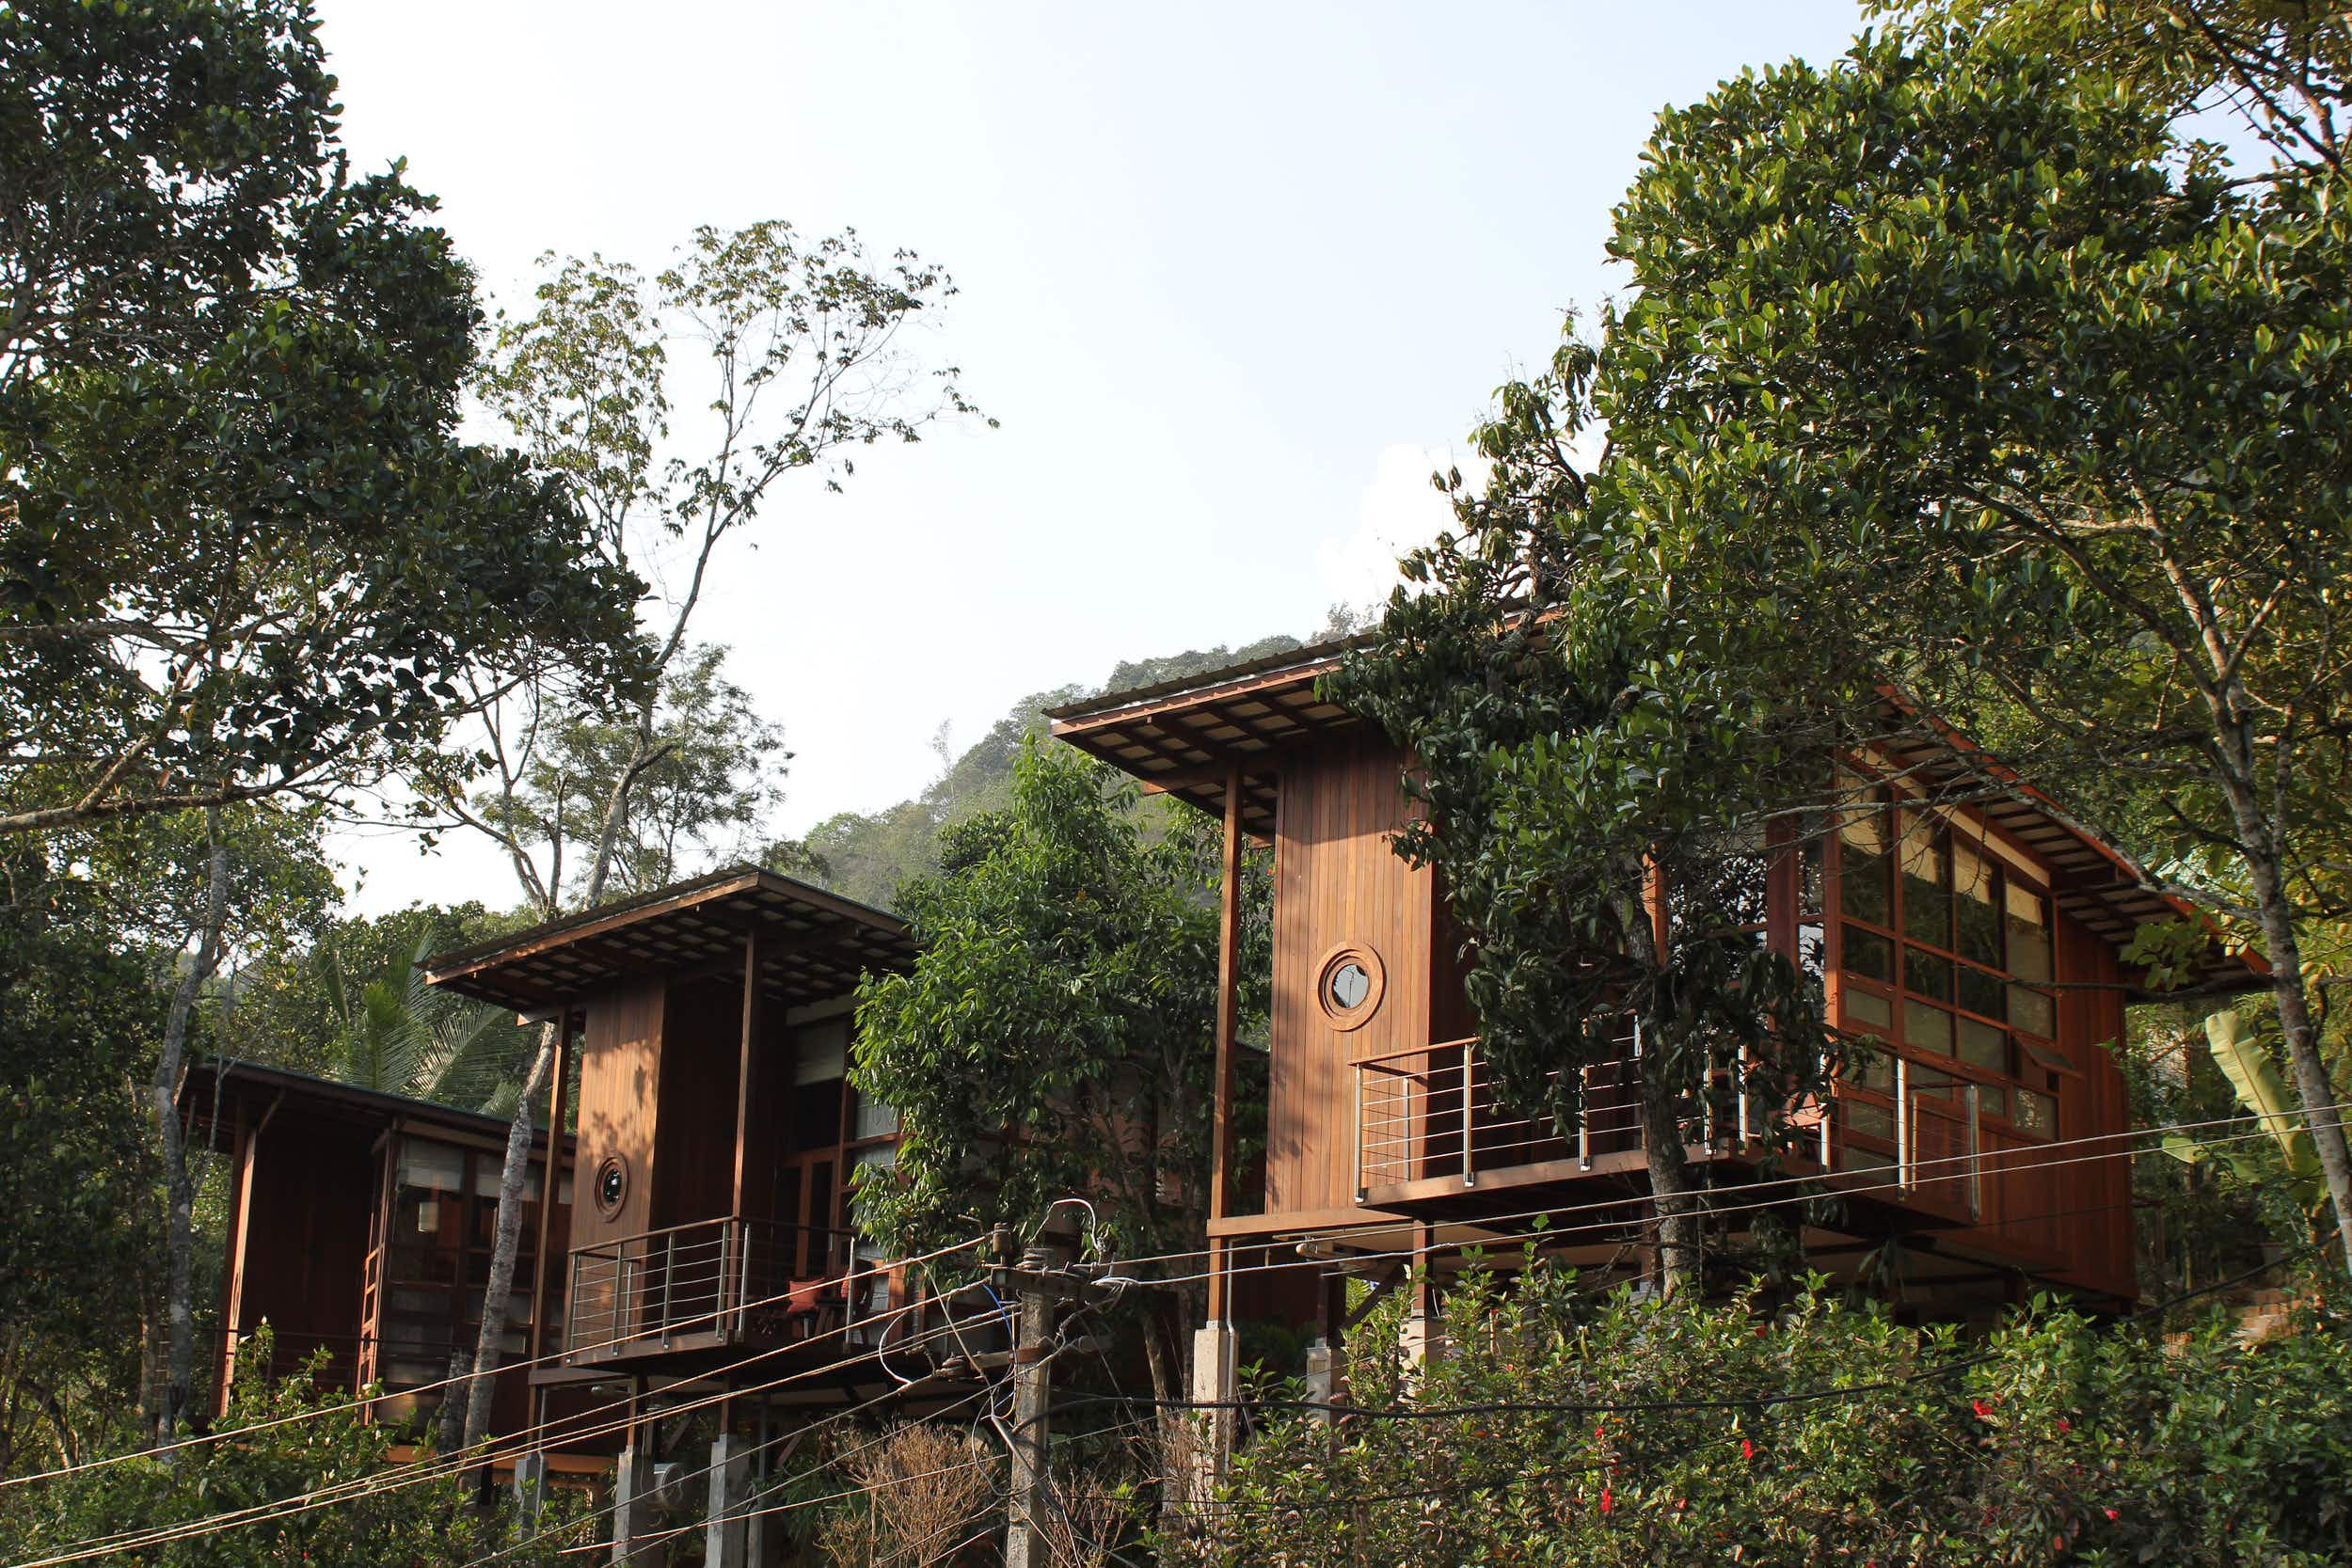 Hang out in a tree house retreat on a cardamom plantation in India